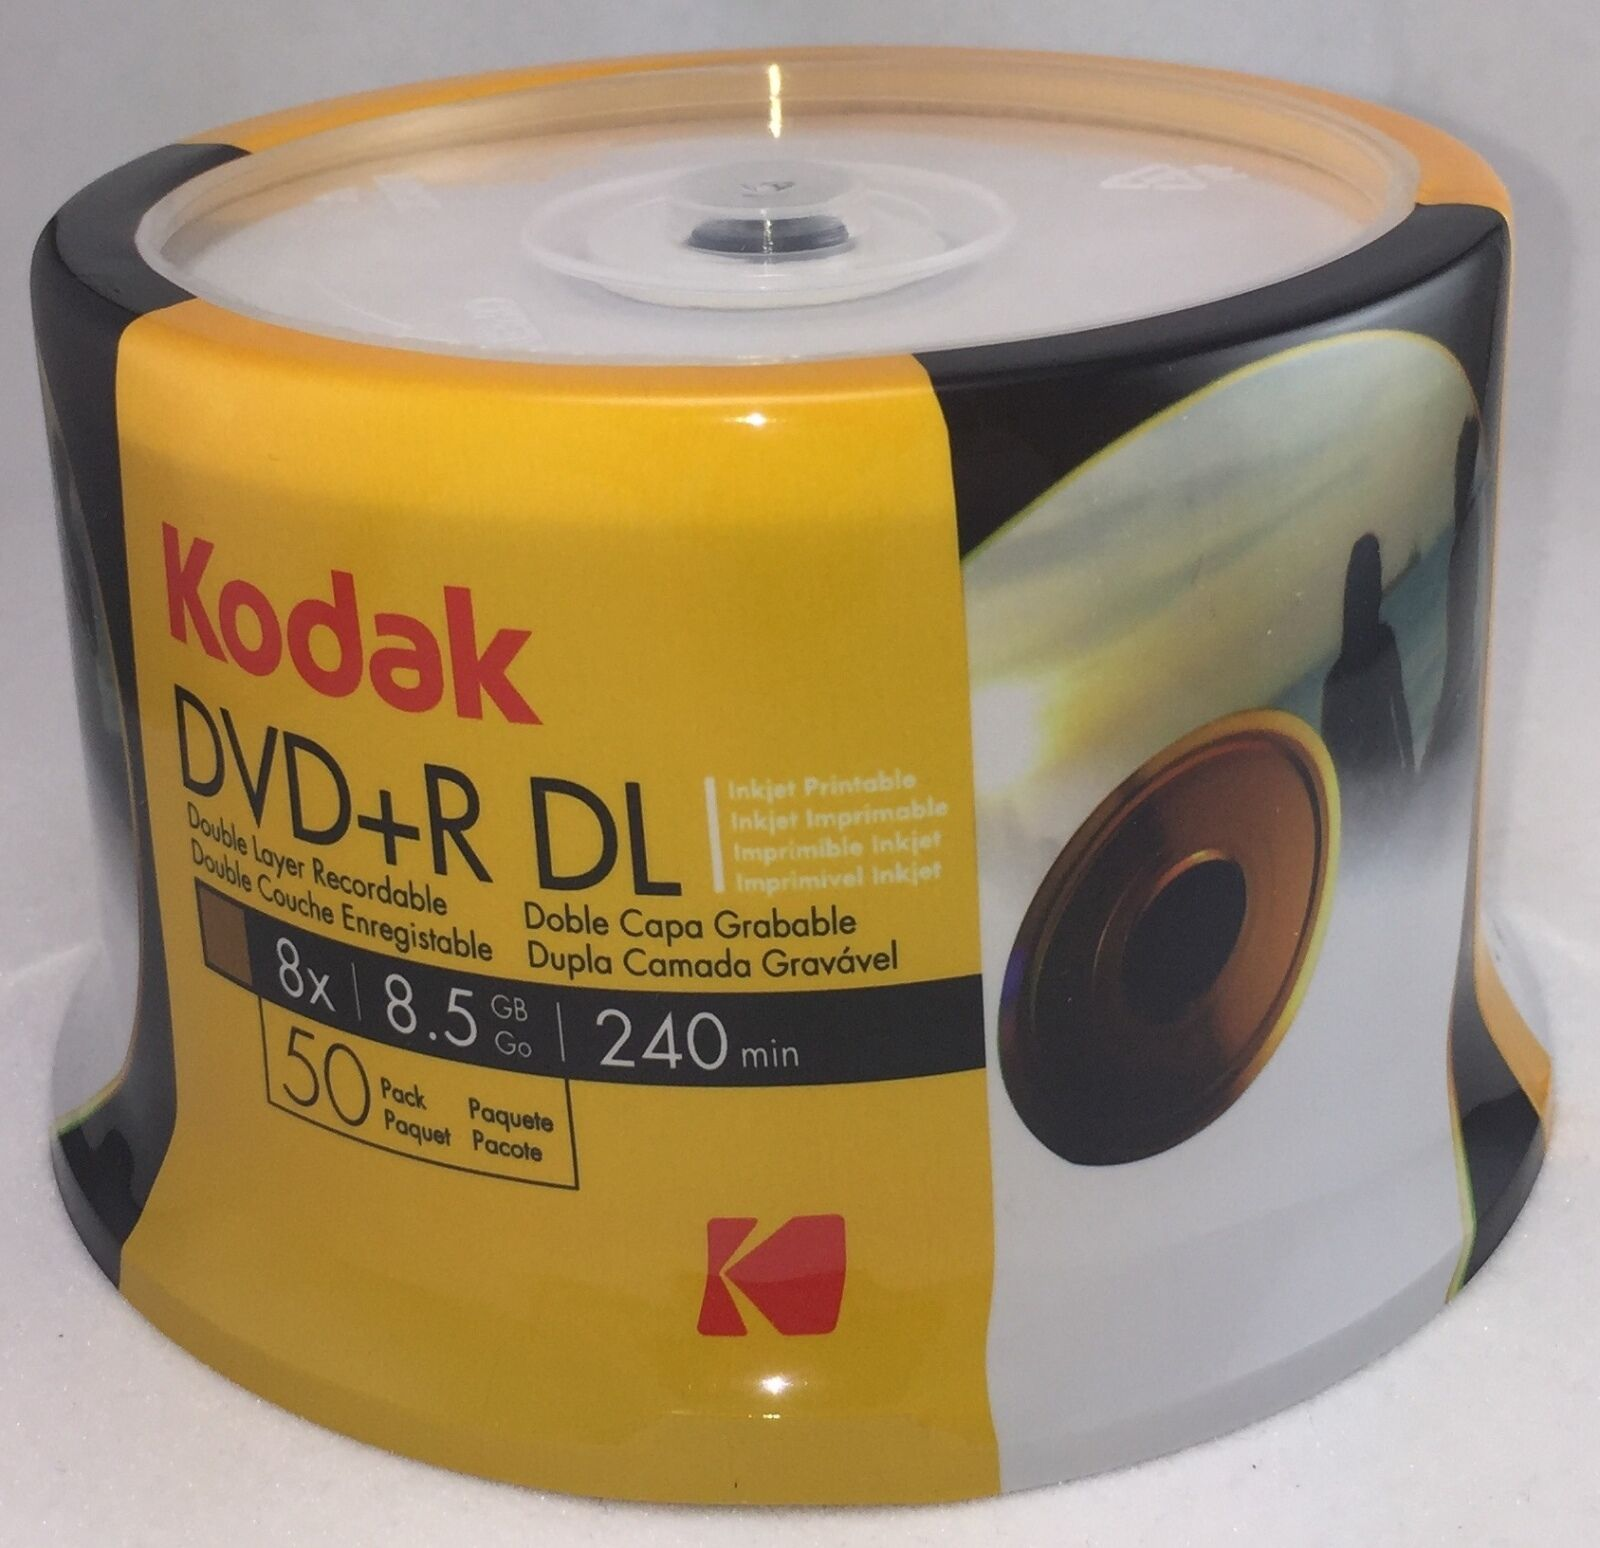 200 Kodak 8x Blank Dvd+r Dl Dual Double Layer 8.5gb White...